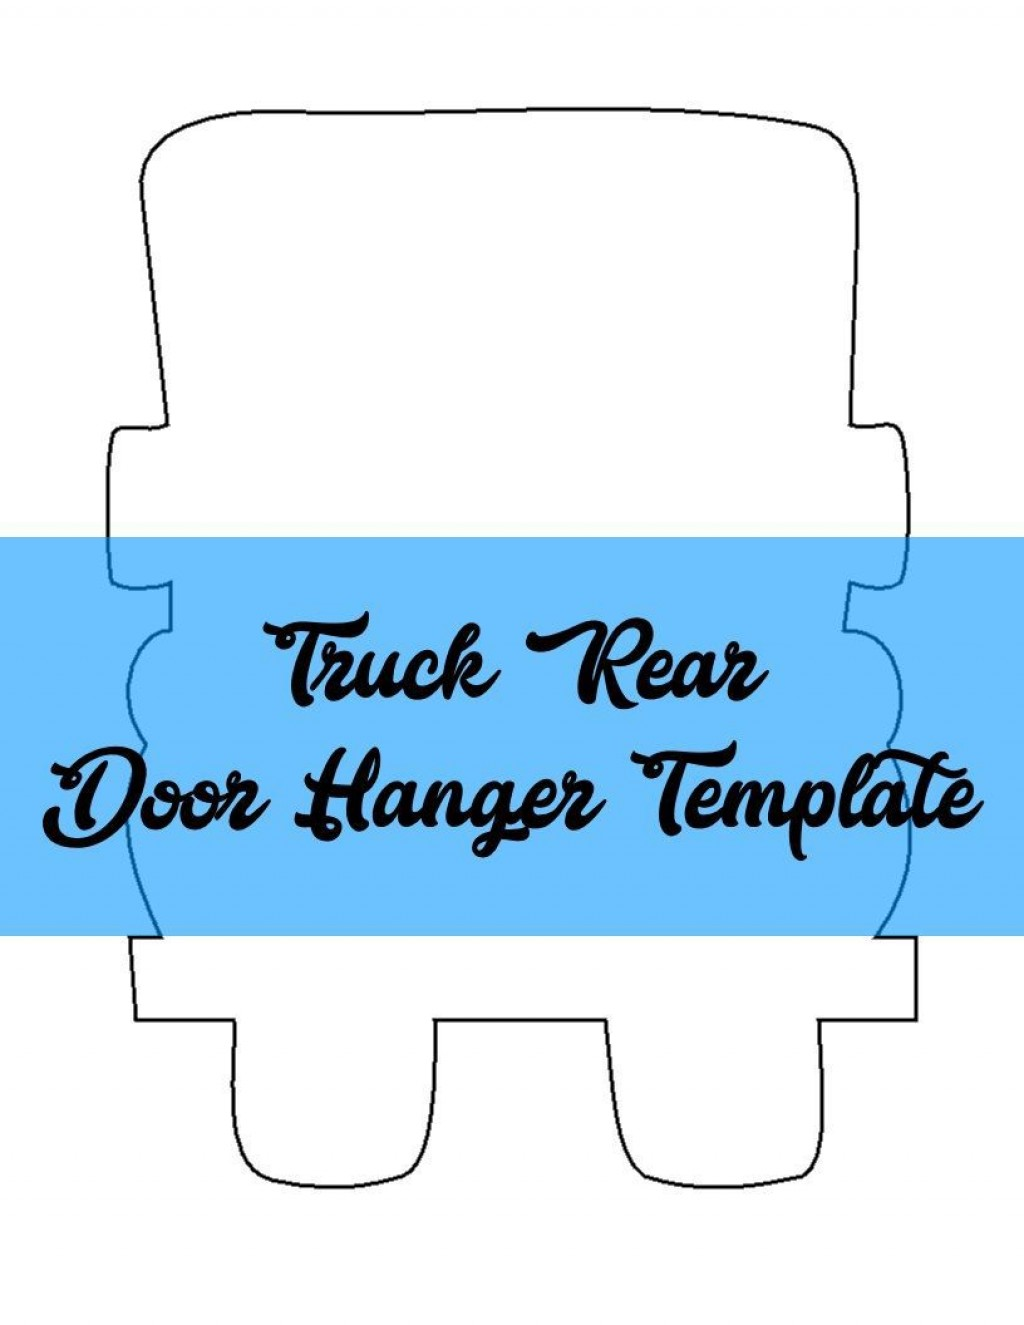 009 Remarkable Free Printable Template For Door Hanger High Definition Large